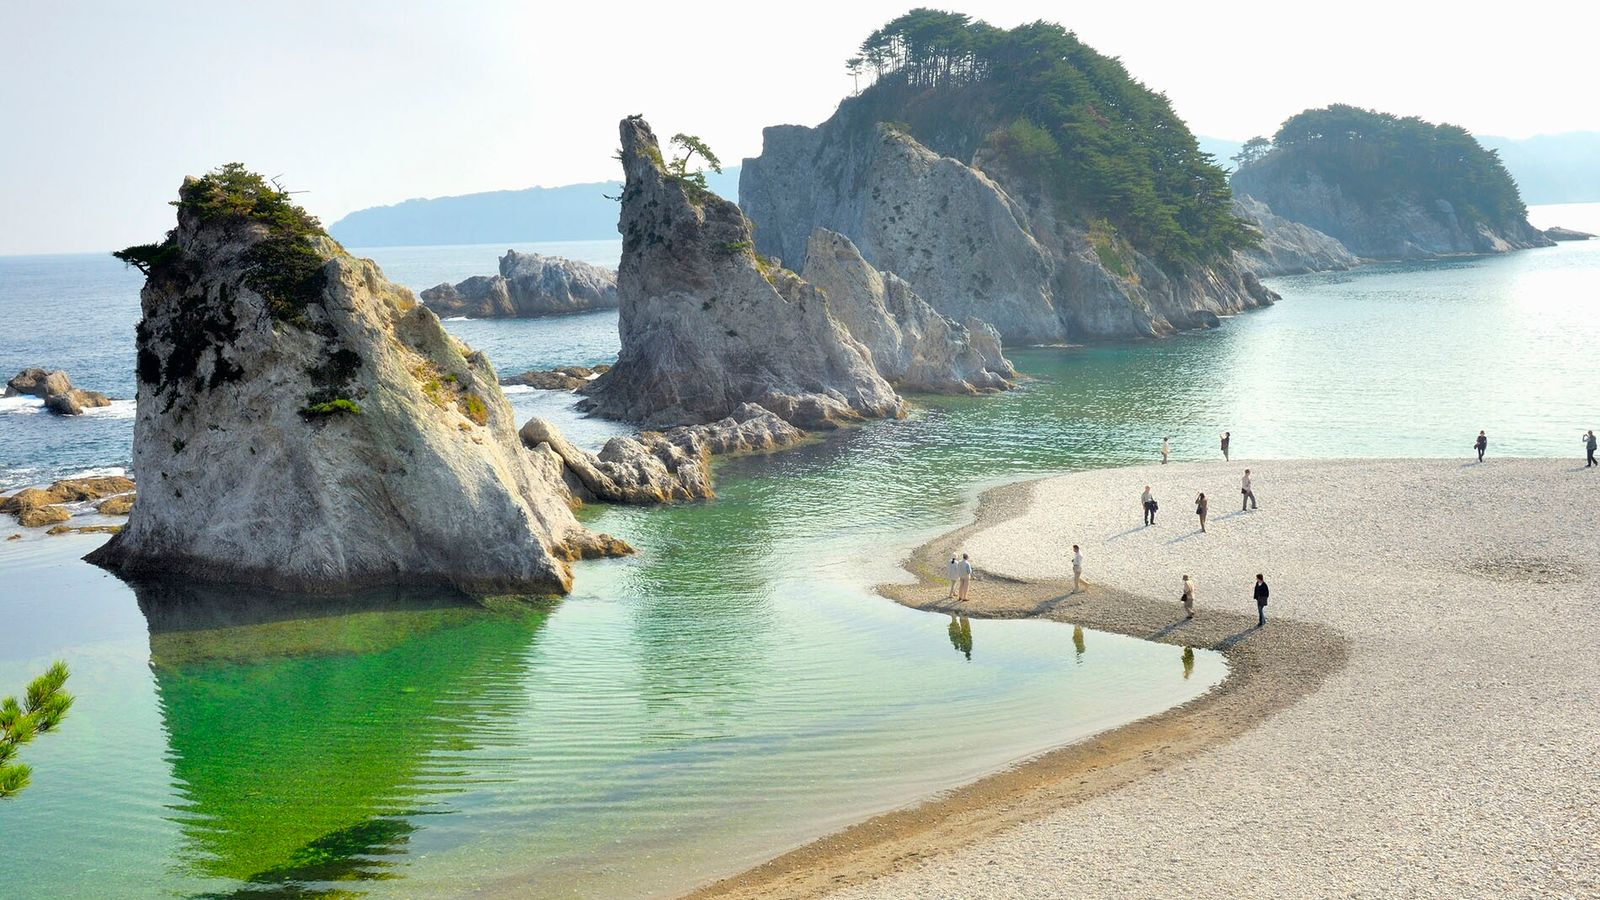 The Jodogahama volcanic rock formations in Miyako are just one of the natural wonders you'll see while walking ...